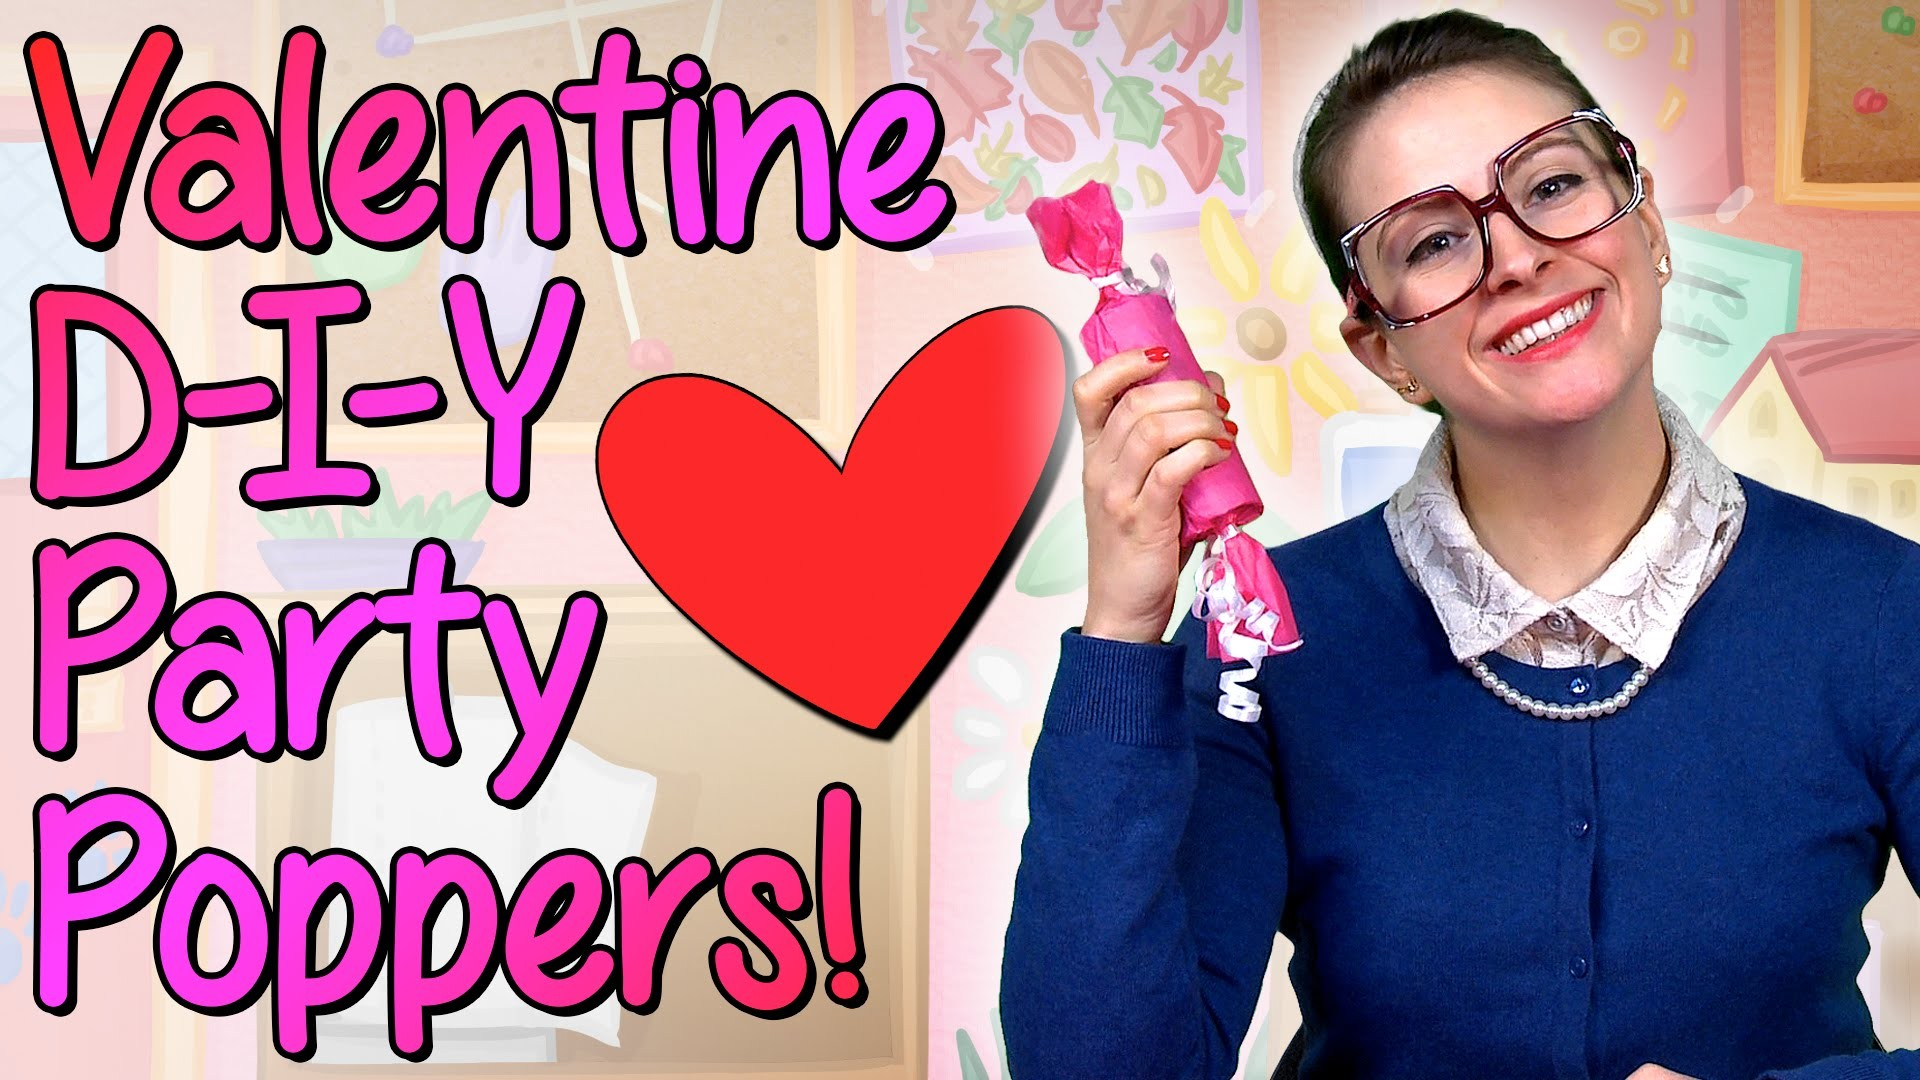 Valentines Day - DIY Party Favors - Crafts for Kids w. Crafty Carol at Cool School